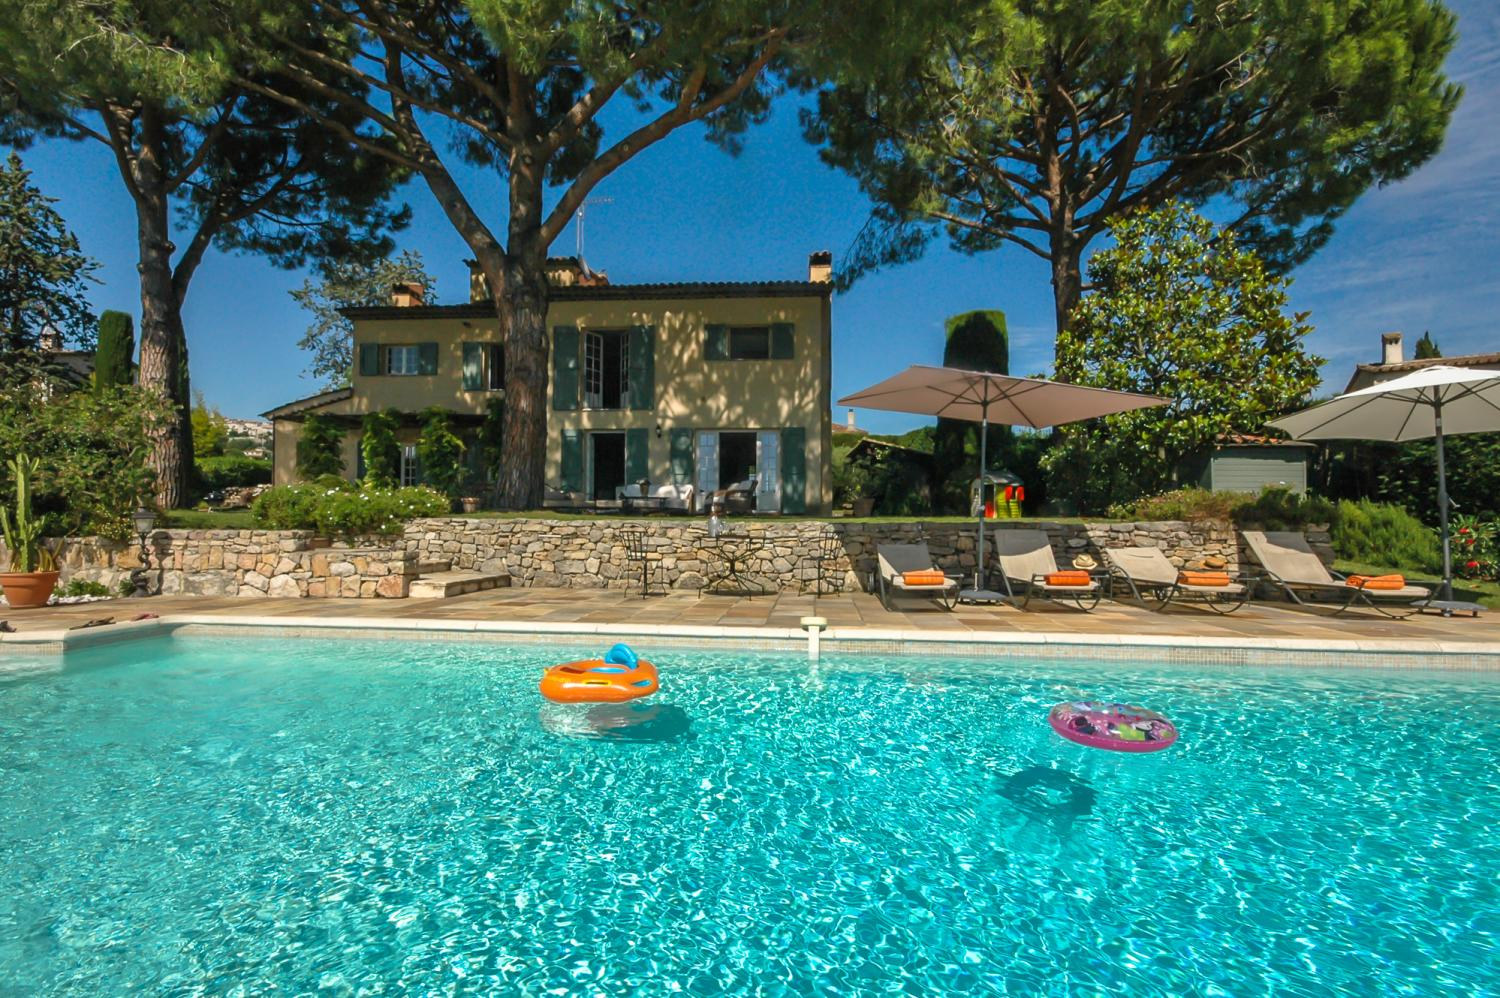 cote d'azur villa for 7